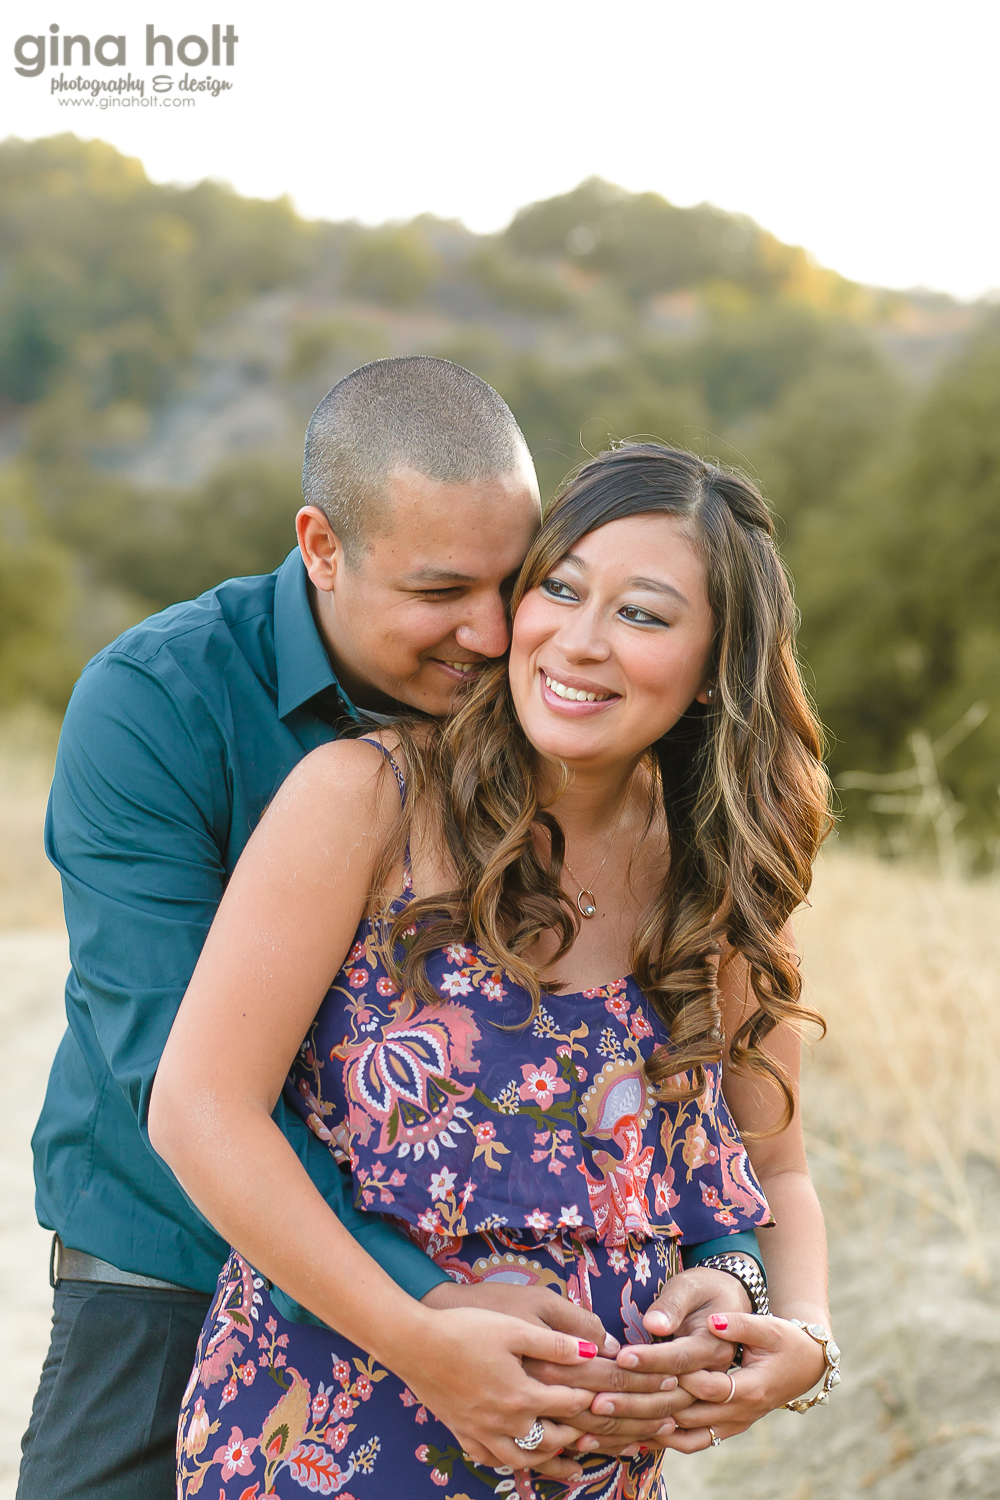 Costa Mesa Maternity Portrait Session, Los Angeles Family Photography, Orange County Maternity Photographer, Outdoor Couple Maternity Photographer, Bohemian Inspired Maternity Session, Belly Bump, New Additions, Baby Samuel, Expecting Parents